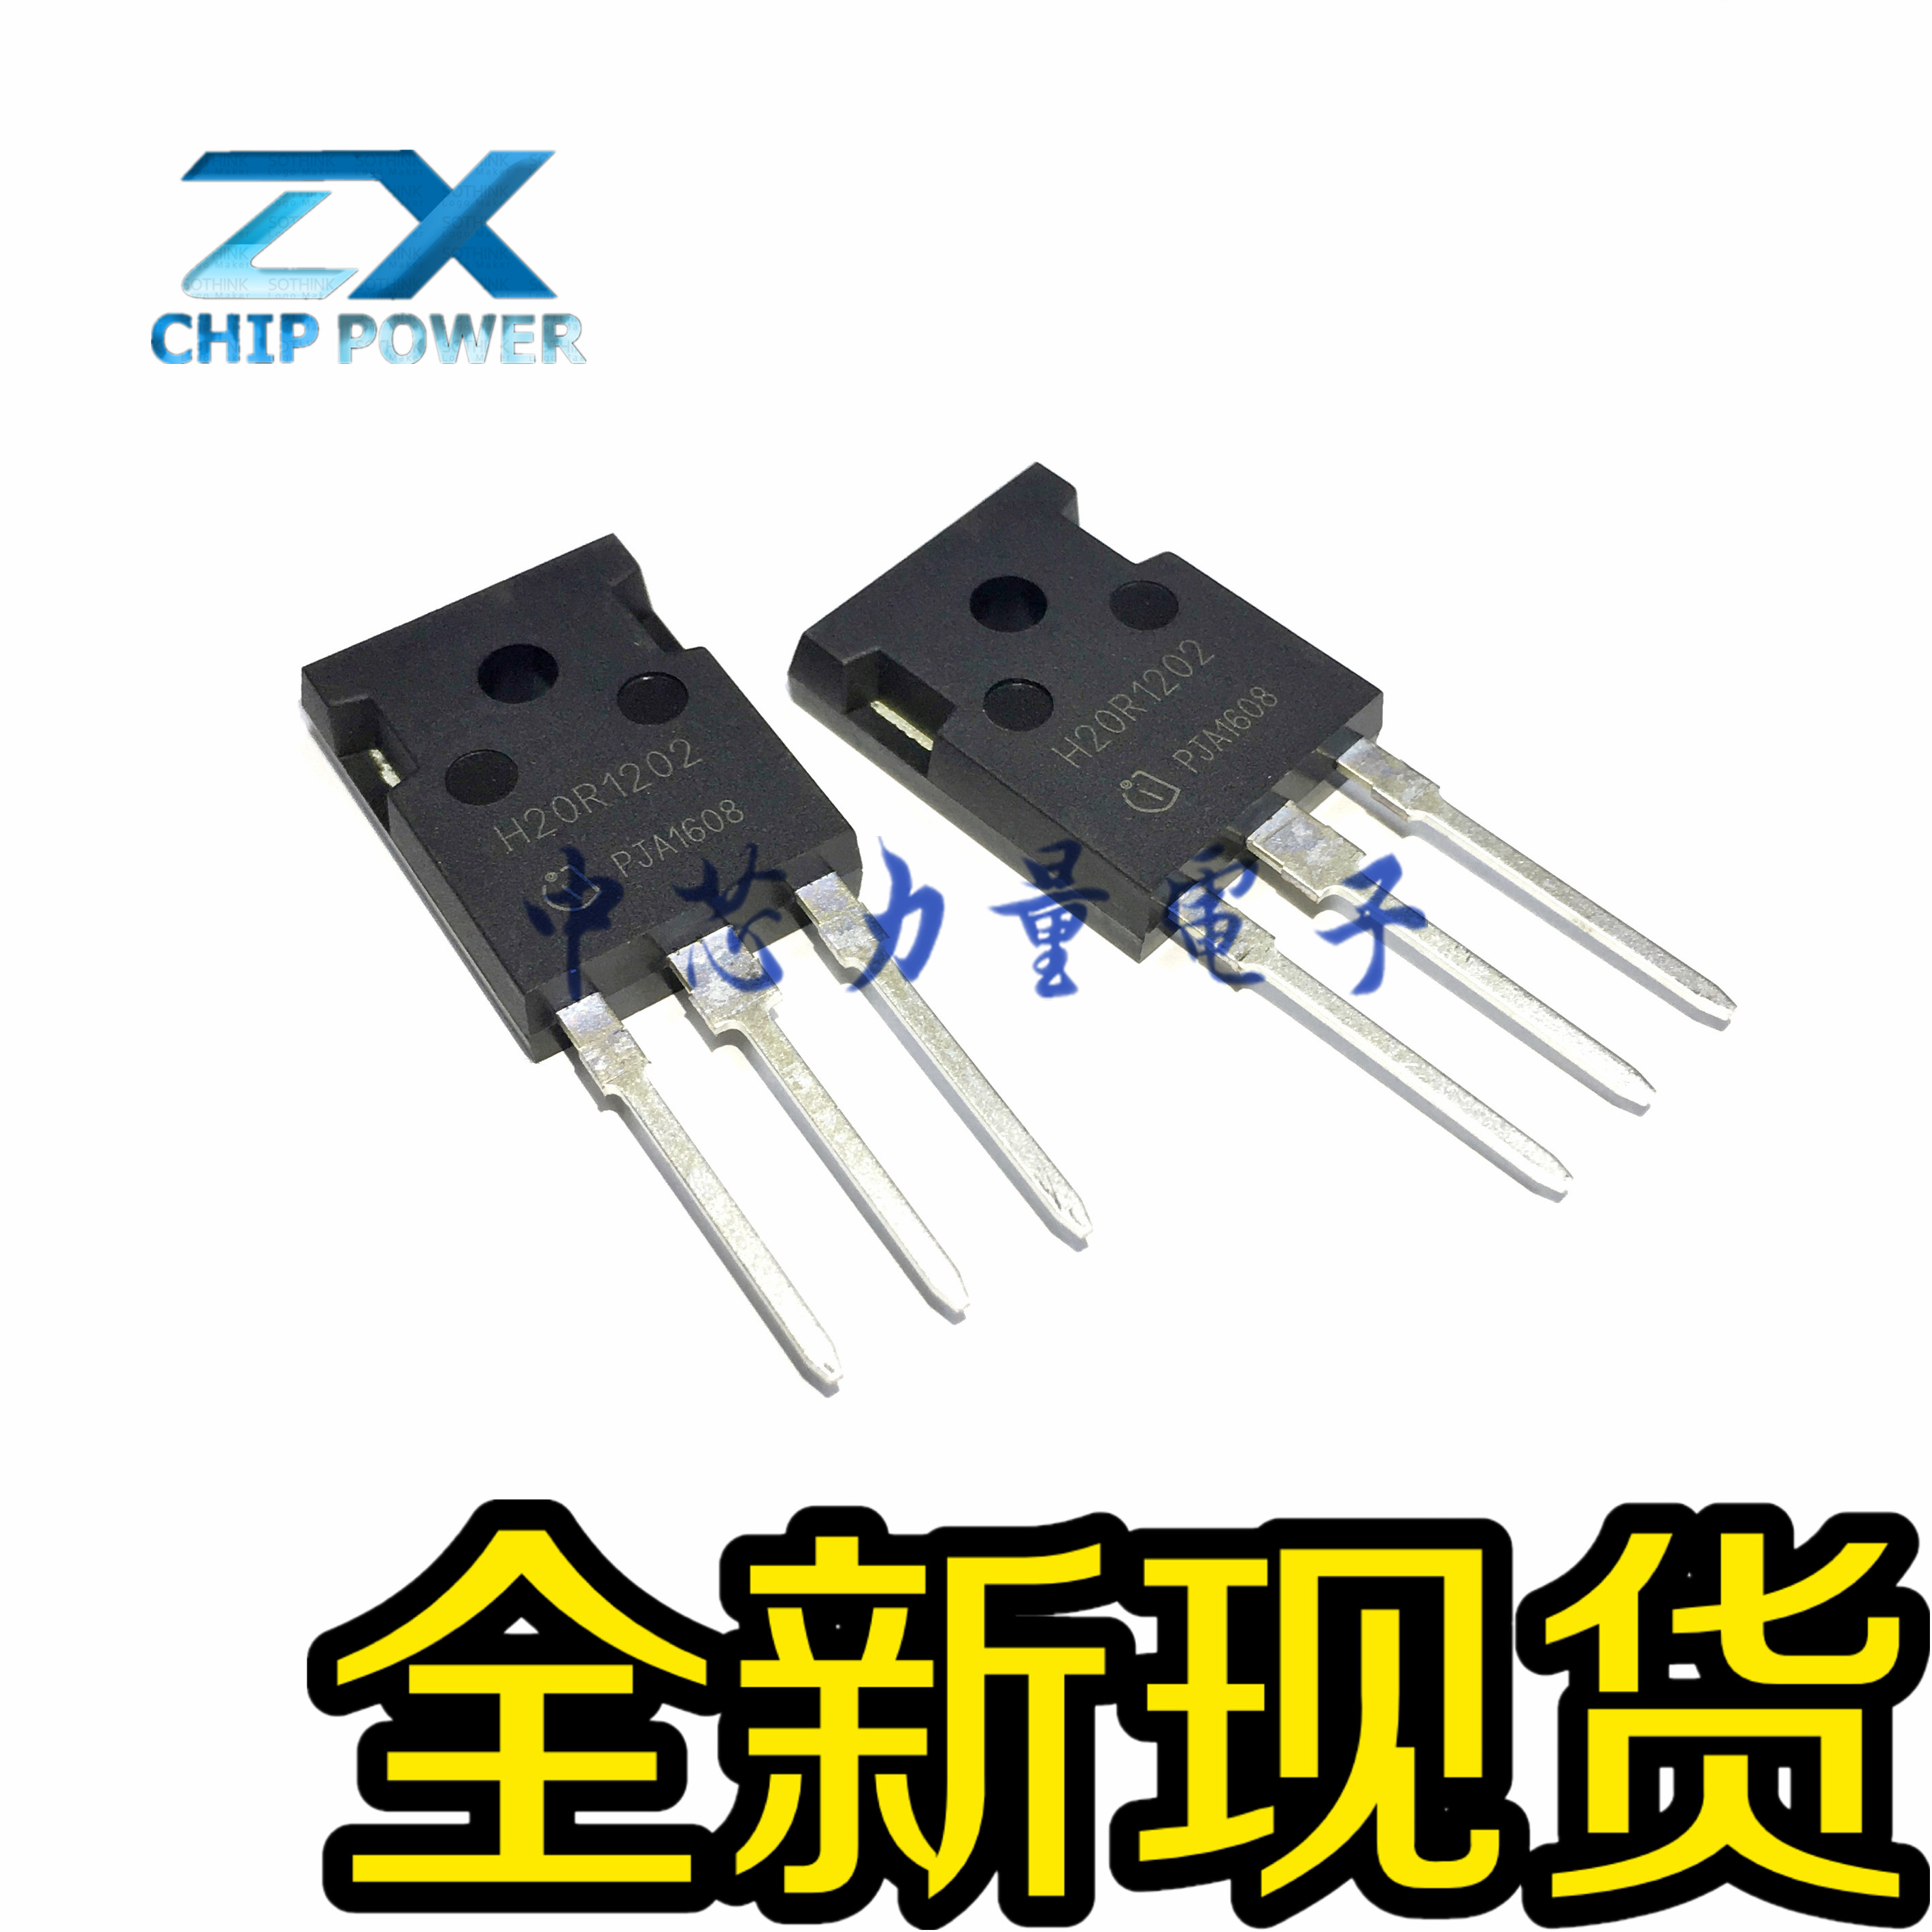 H20R1202 replaces H20R1203 20A 1200V IGBT induction cooker power